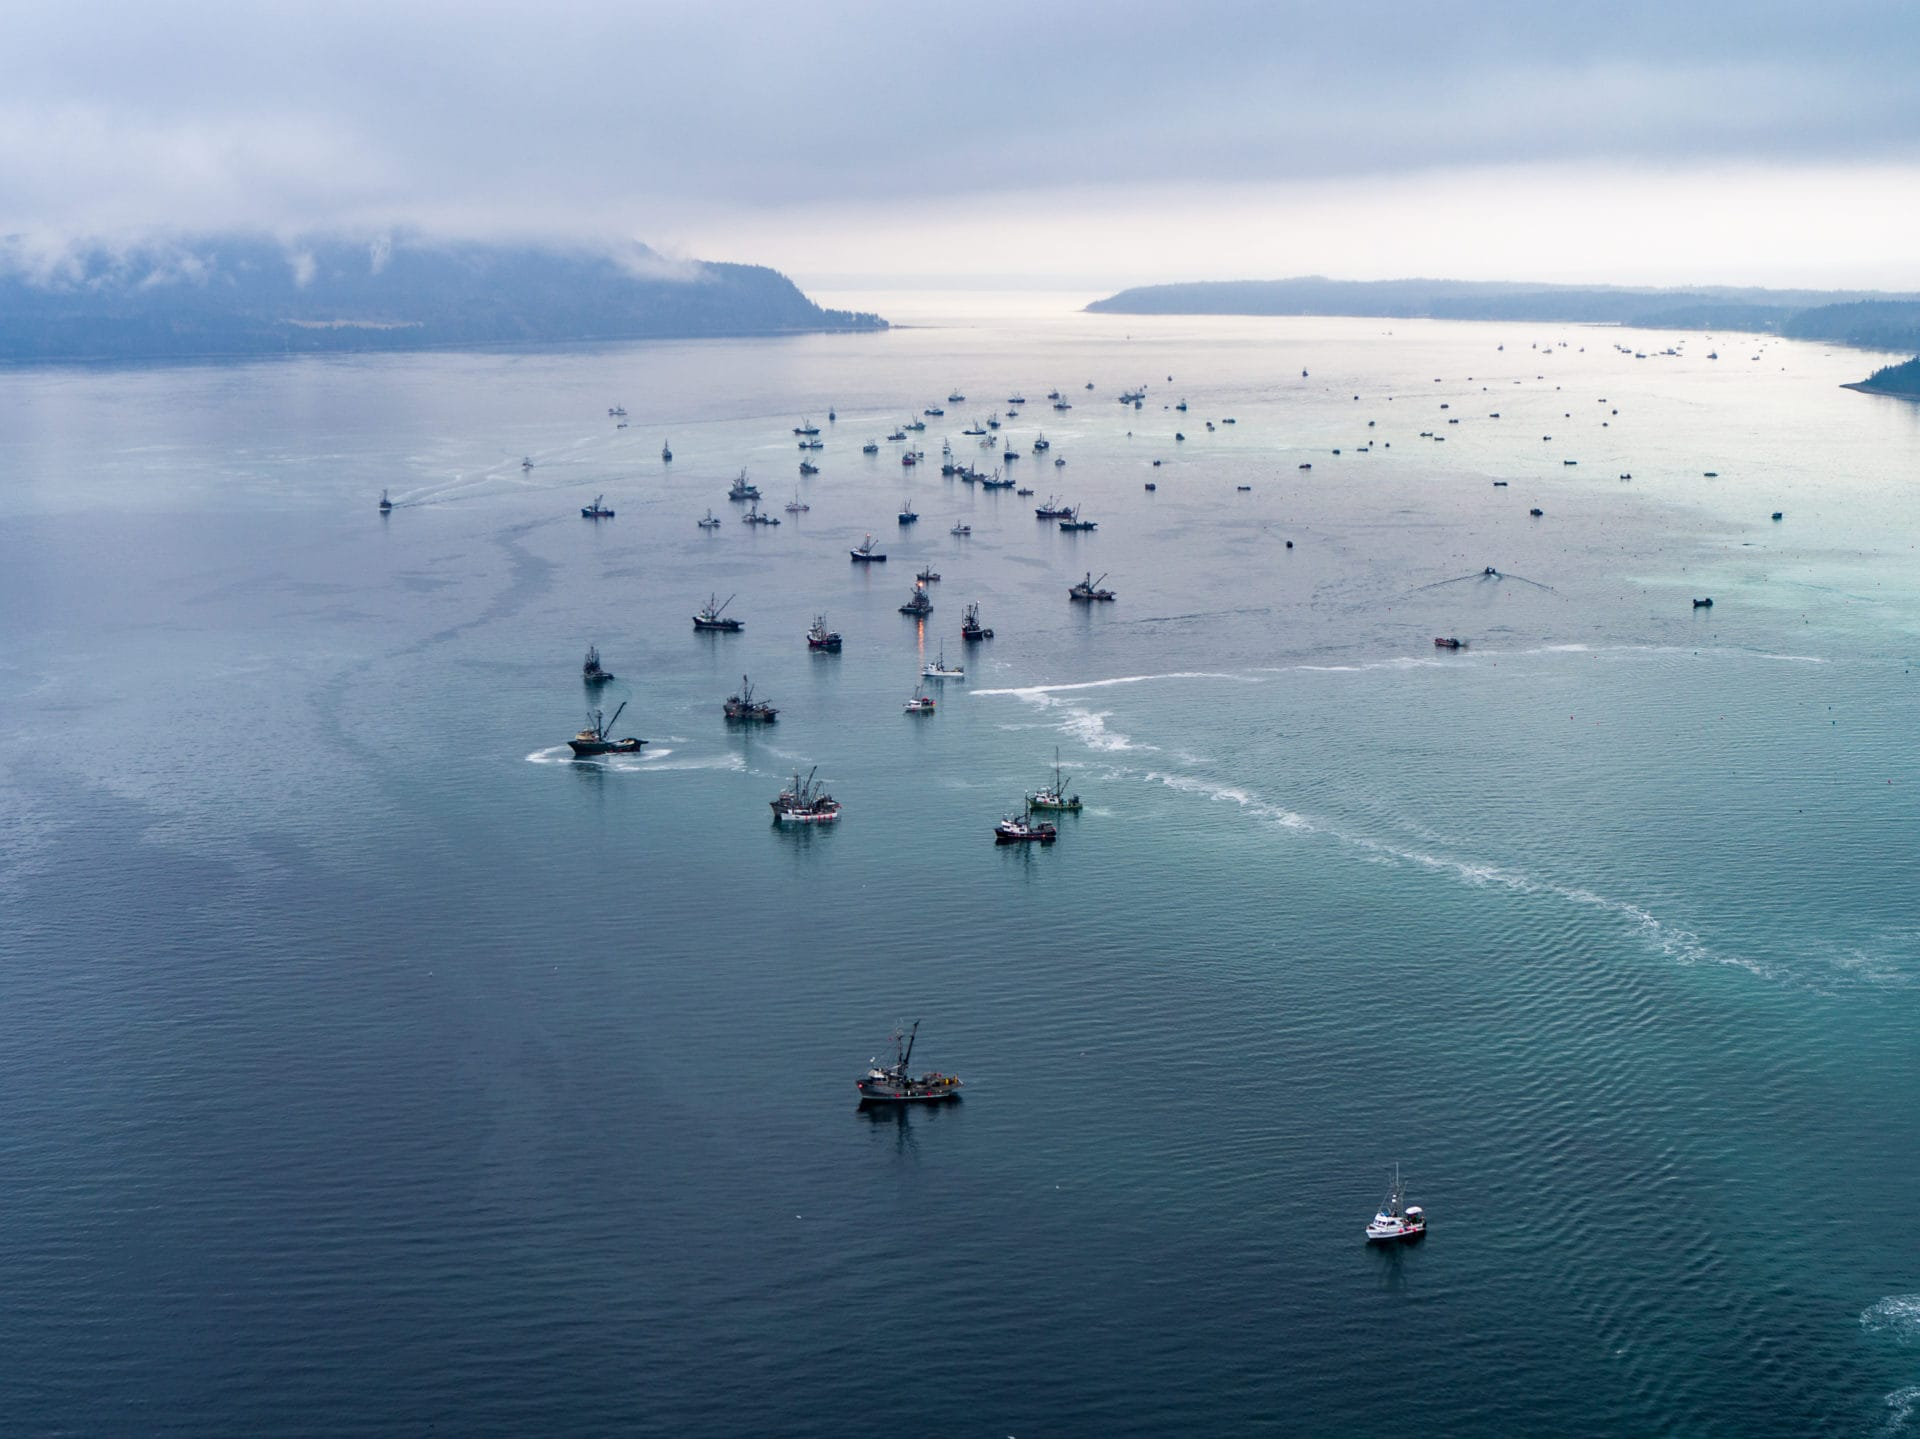 Herring fishing boats March 2019